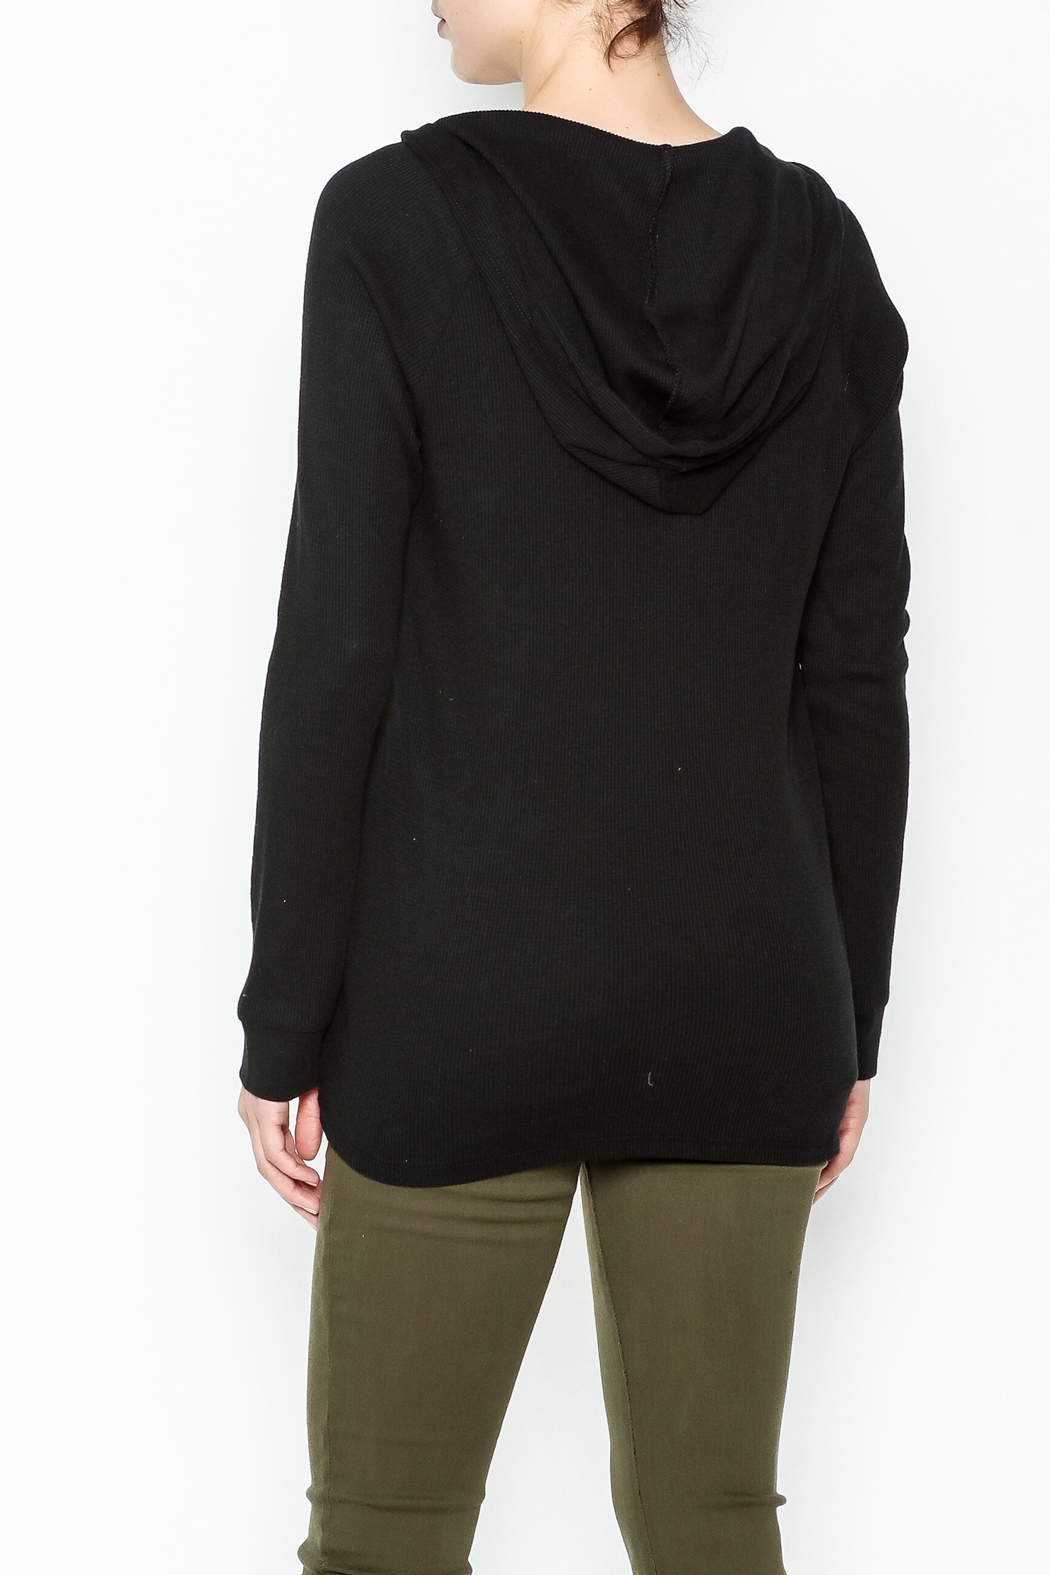 Zsupply Hooded Thermal Top - Back Cropped Image